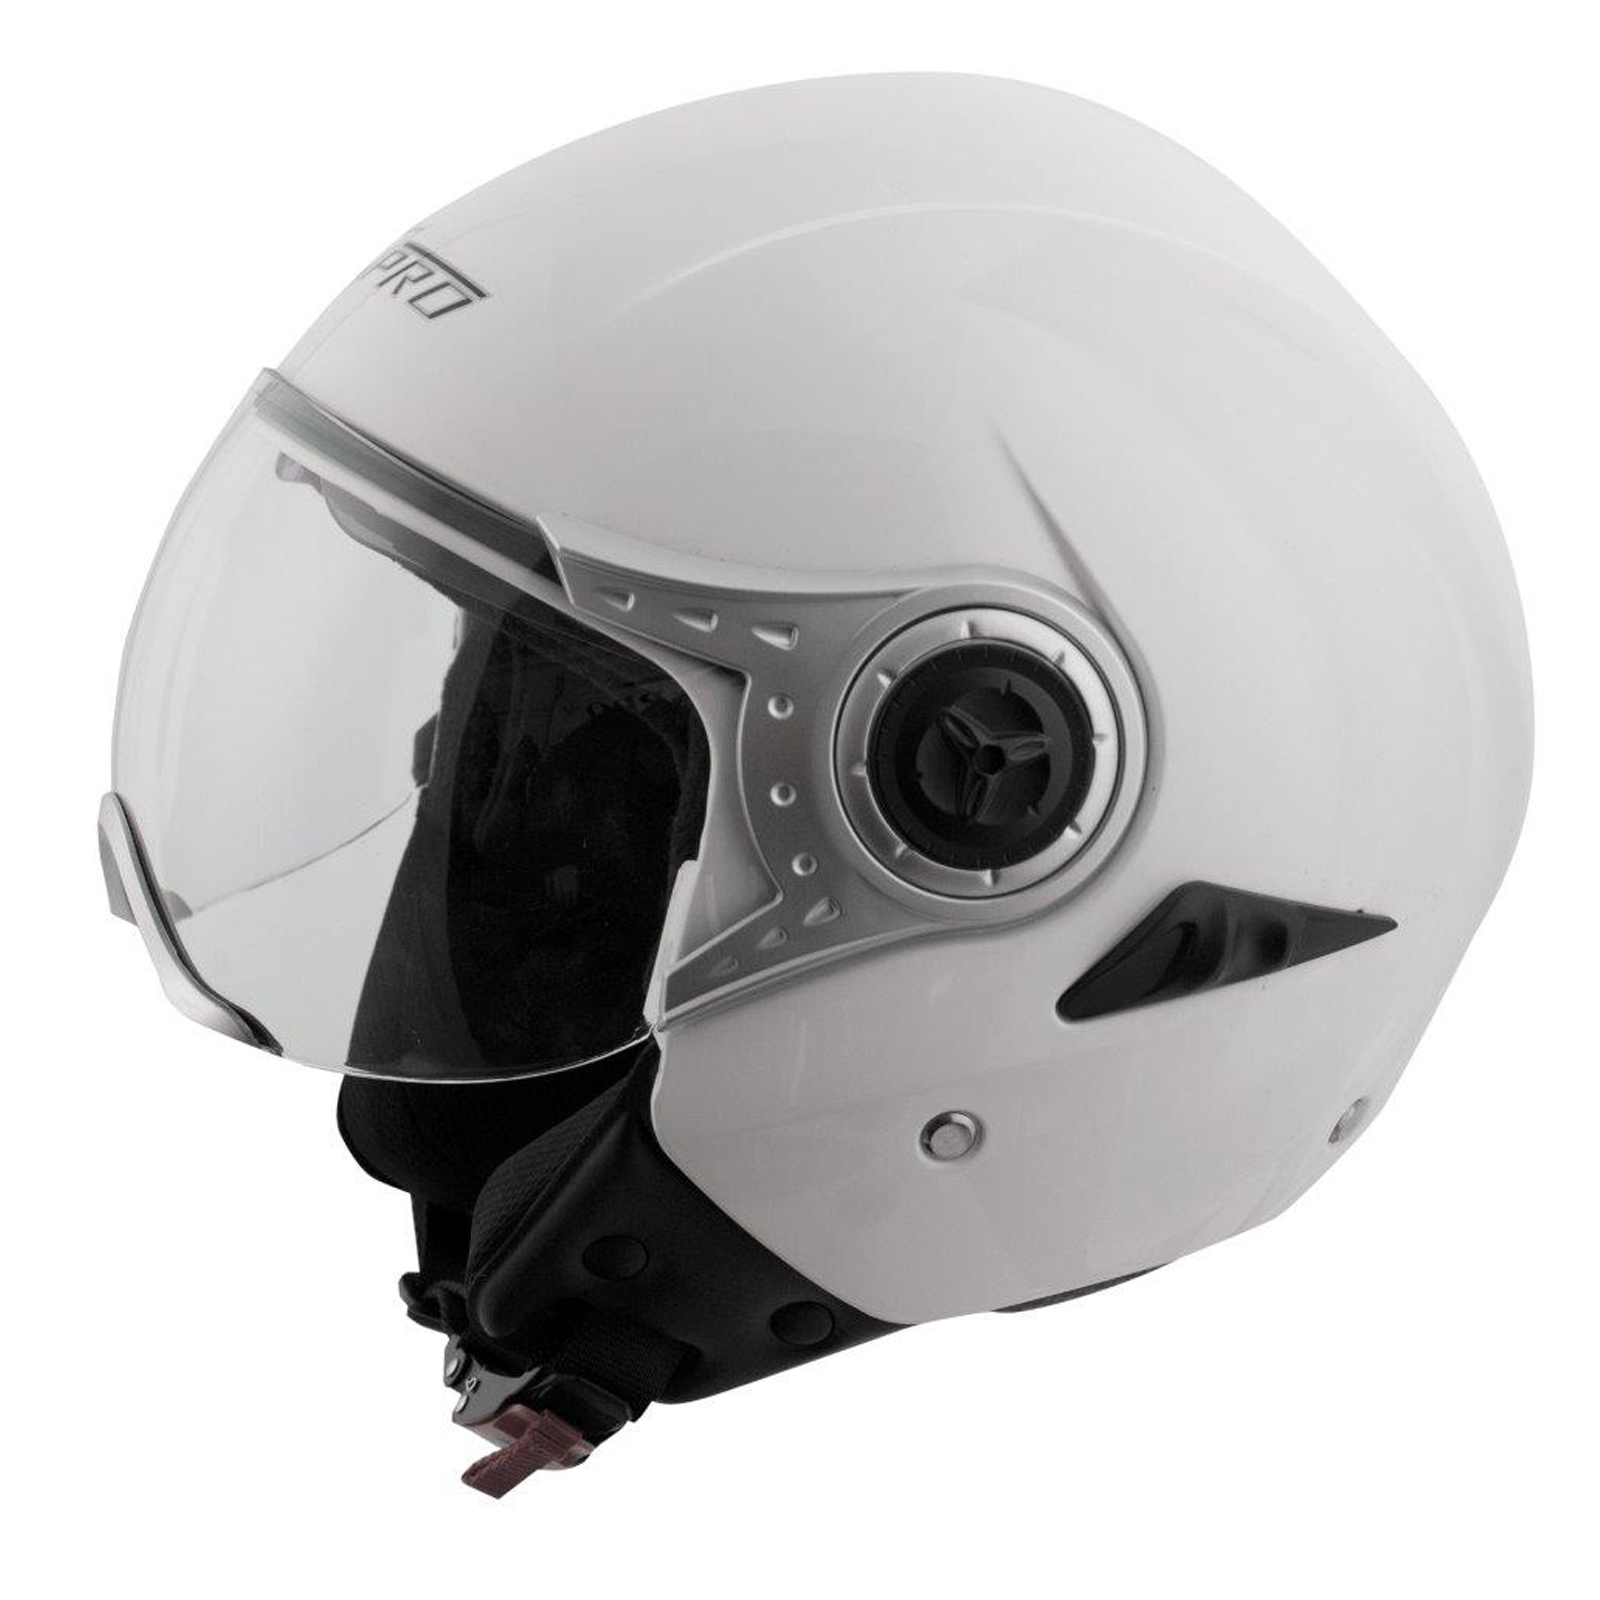 demi jet casque homologu moto scooter visi re pare soleil blanc ebay. Black Bedroom Furniture Sets. Home Design Ideas